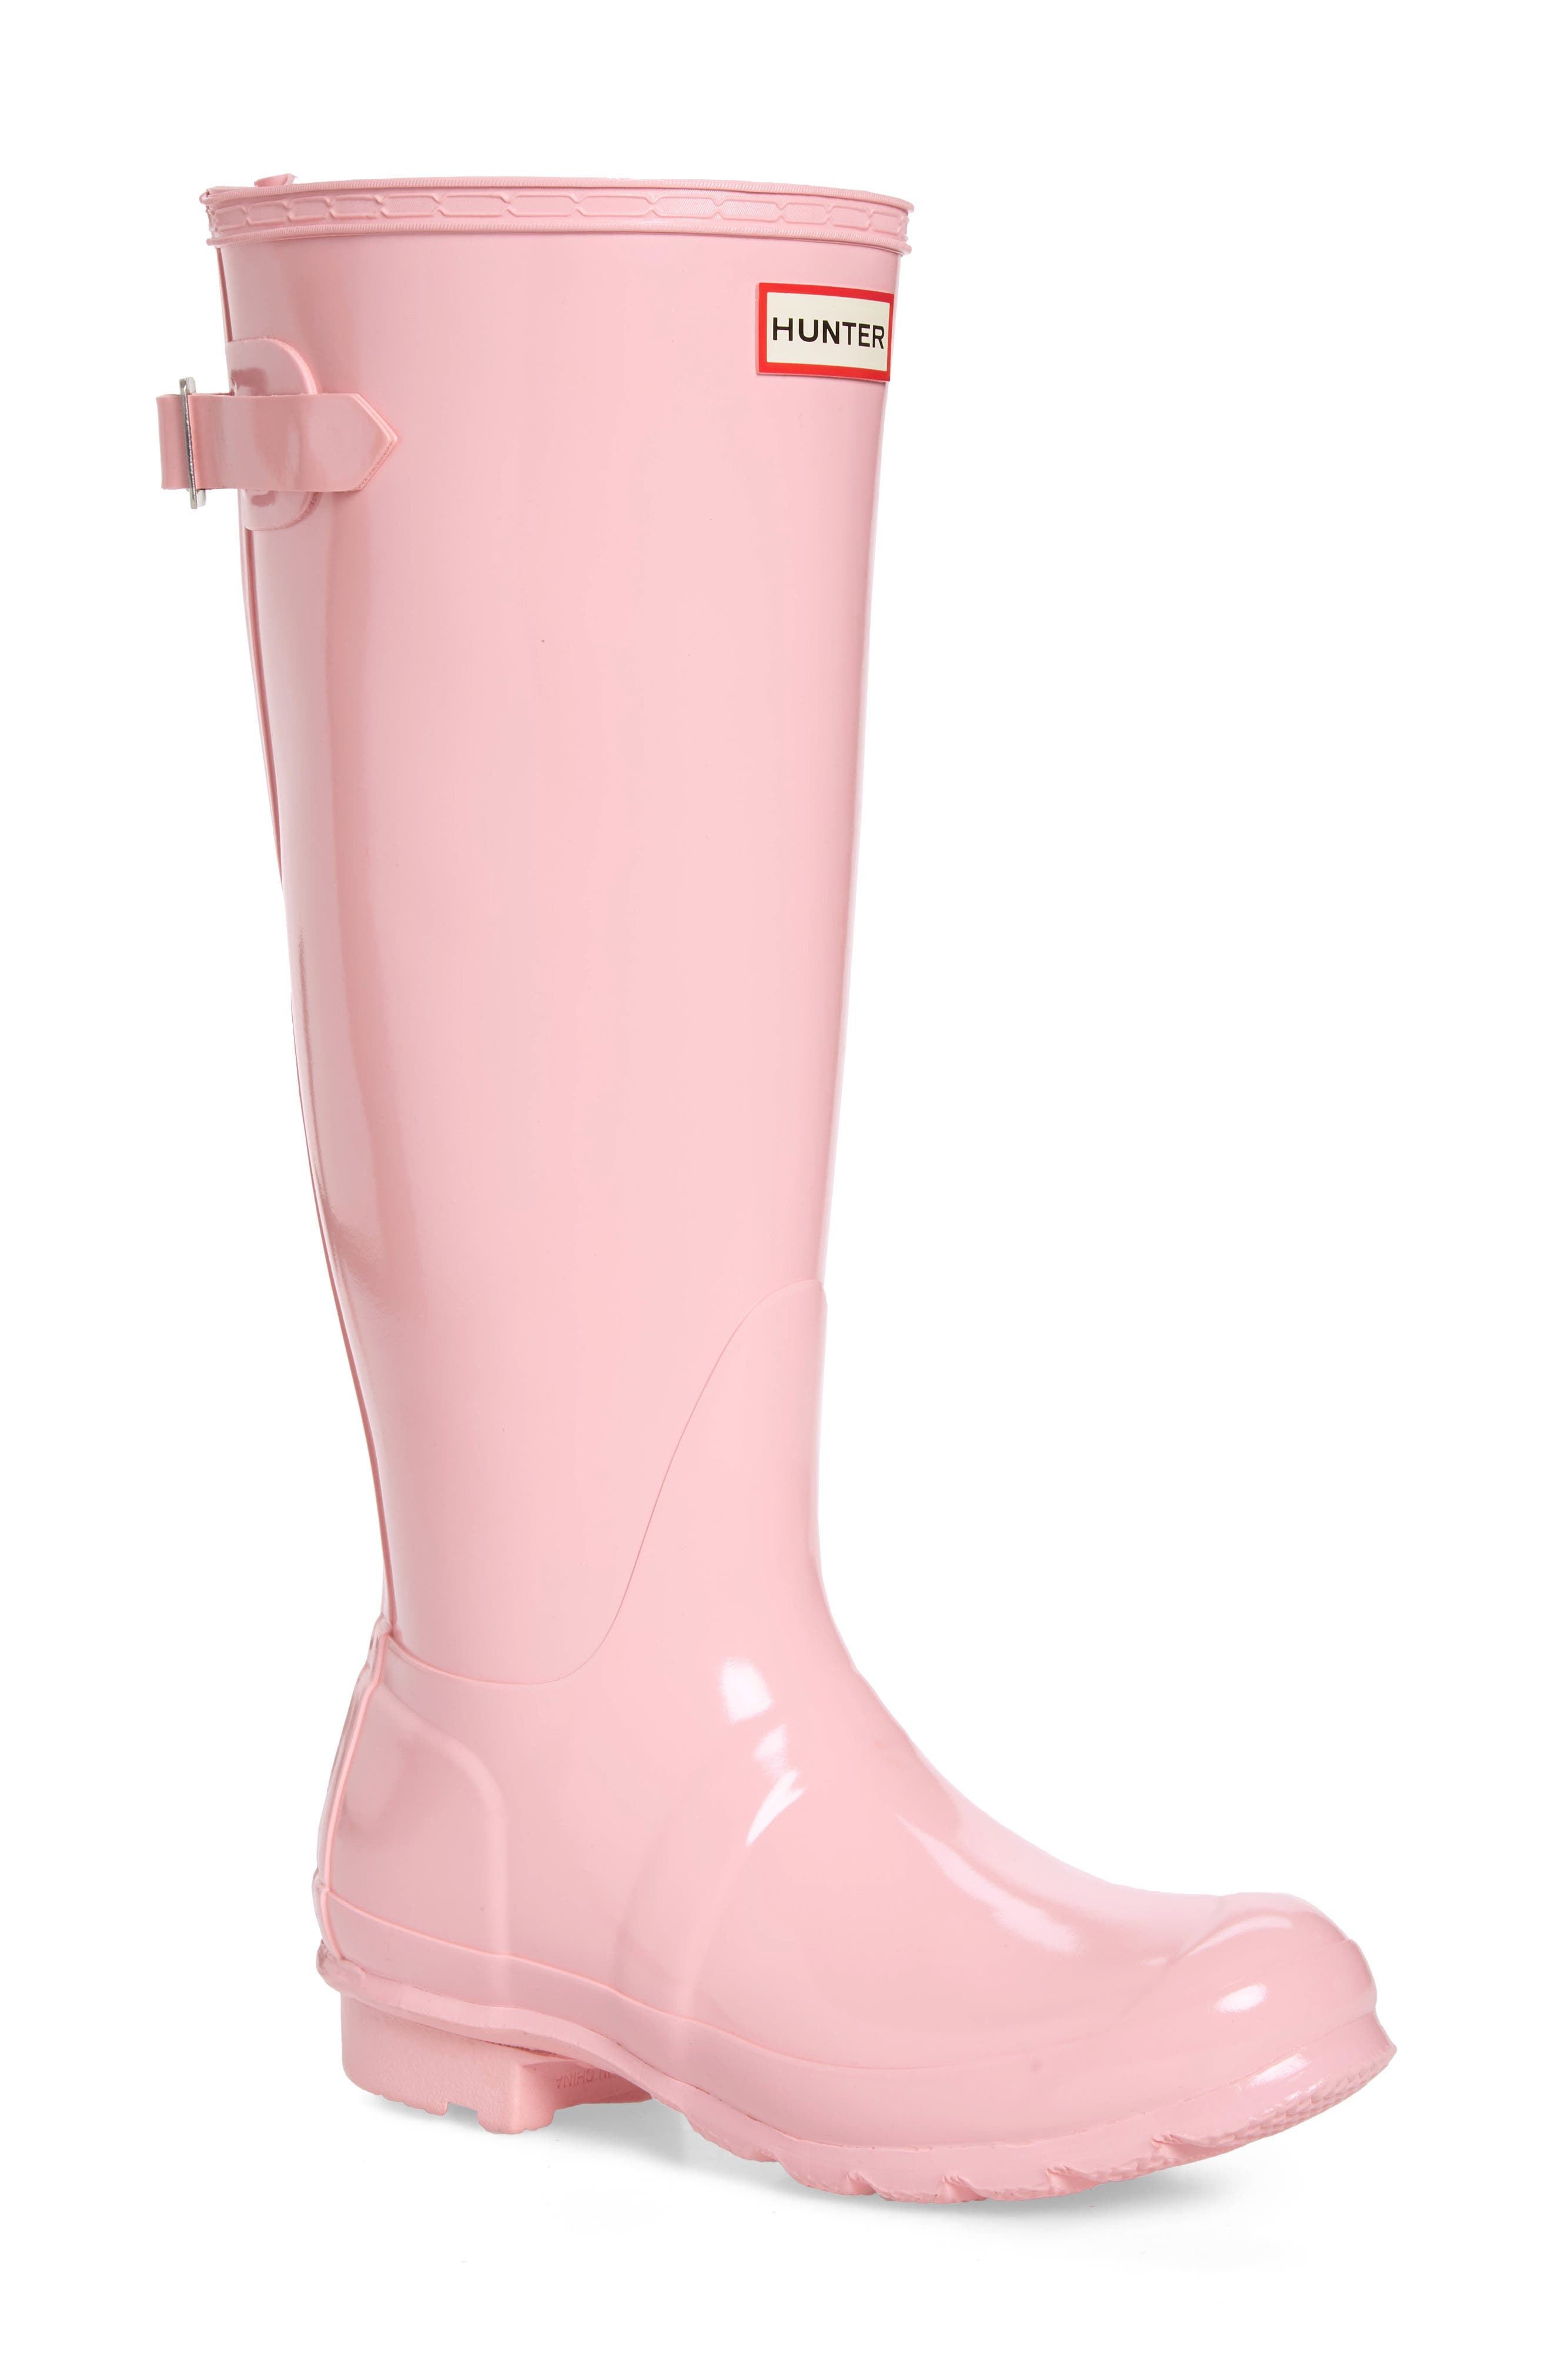 HUNTER Adjustable Back Gloss Waterproof Rain Boot, Main, color, CANDY FLOSS RUBBER